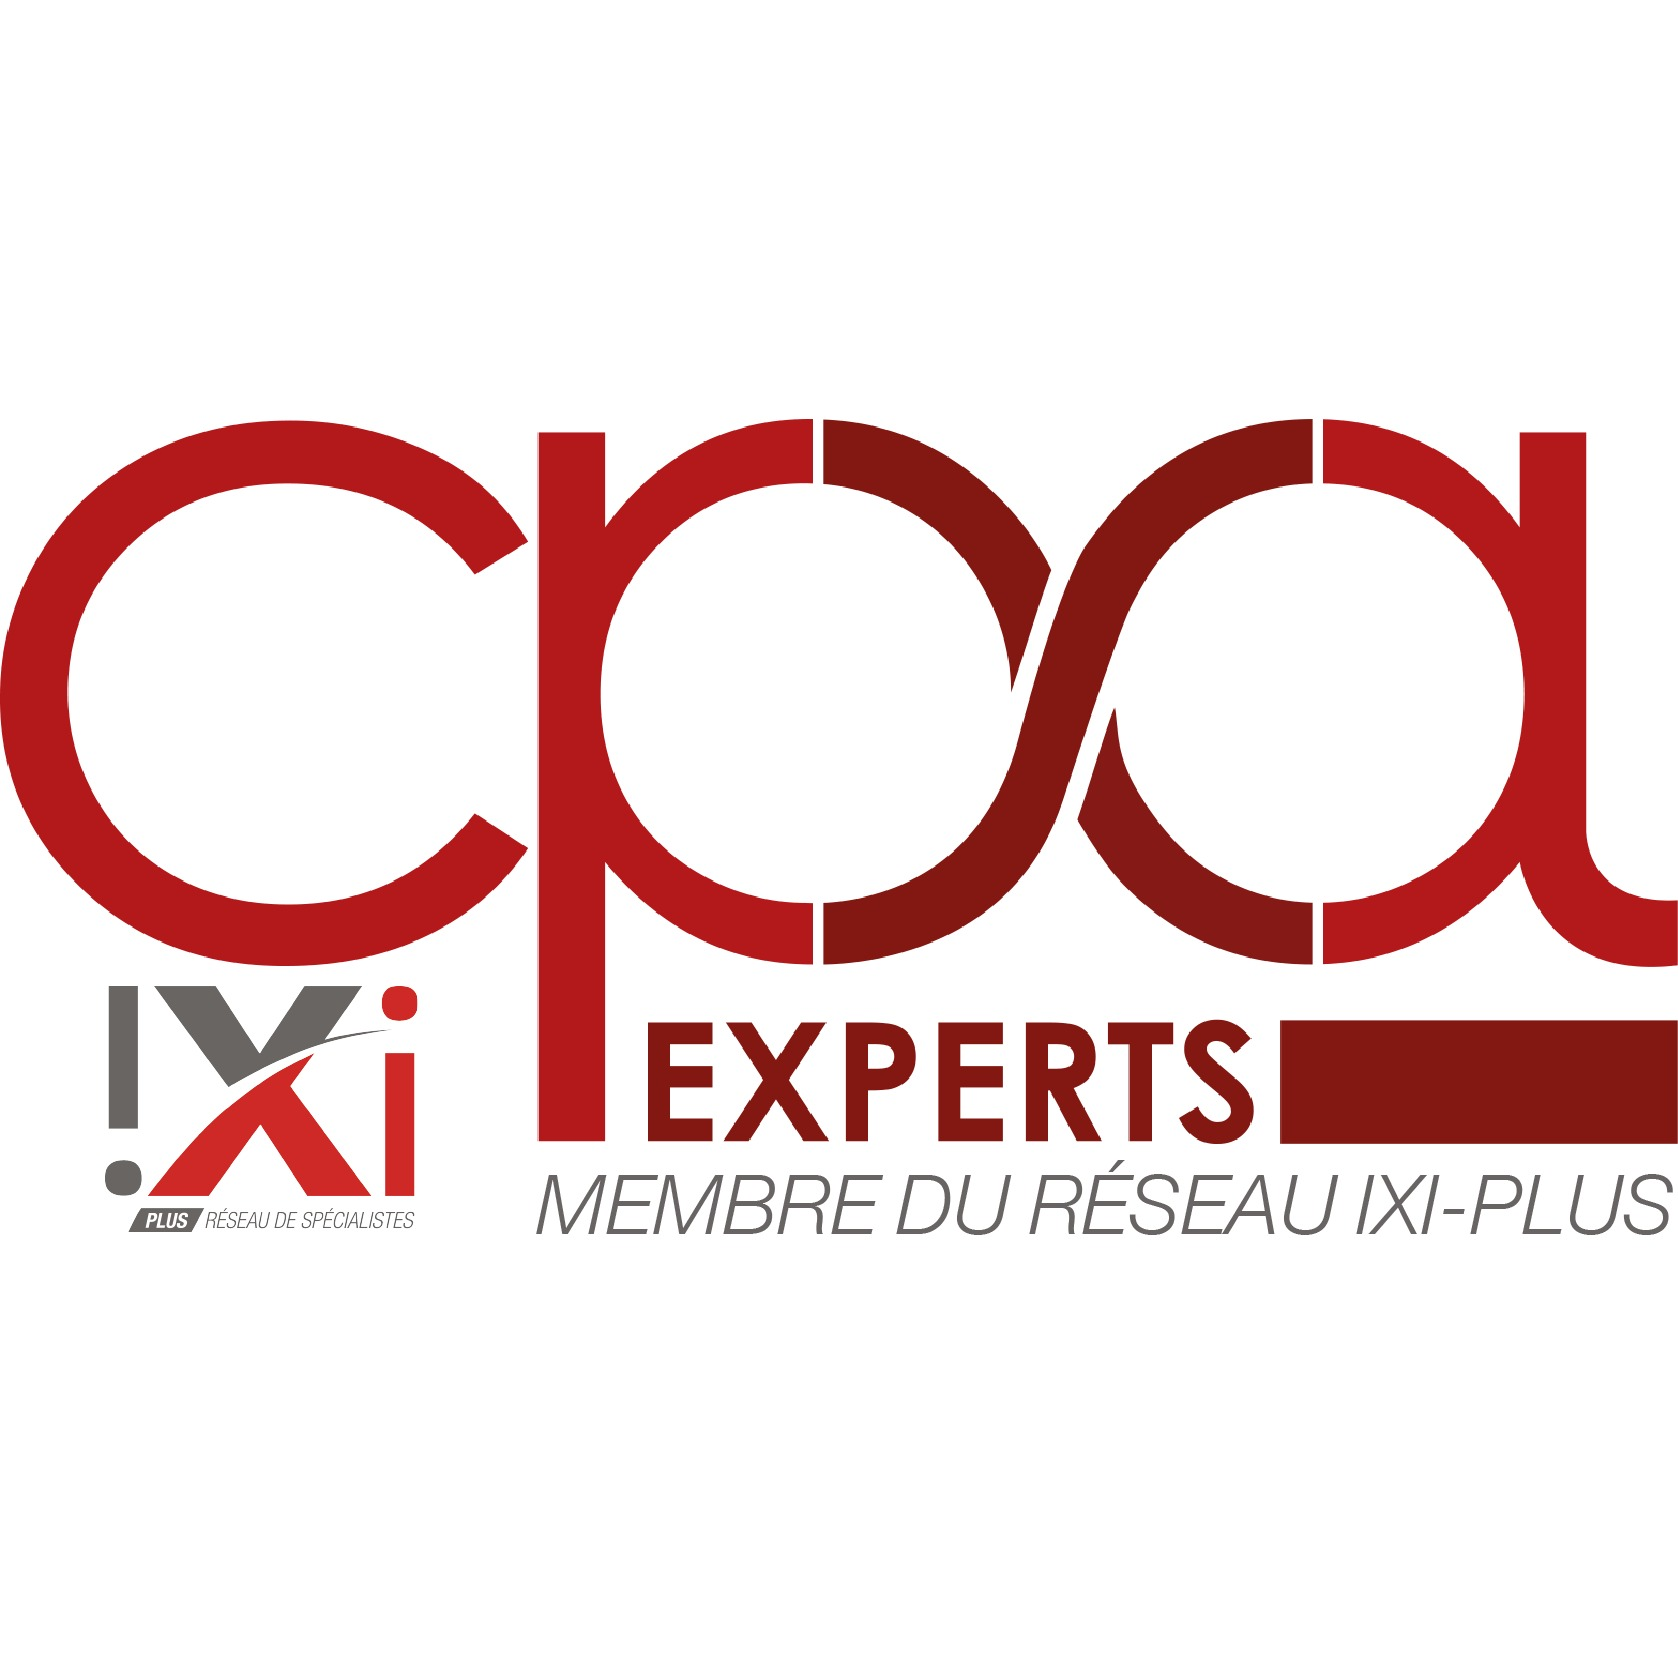 the CPA EXPERTS logo.